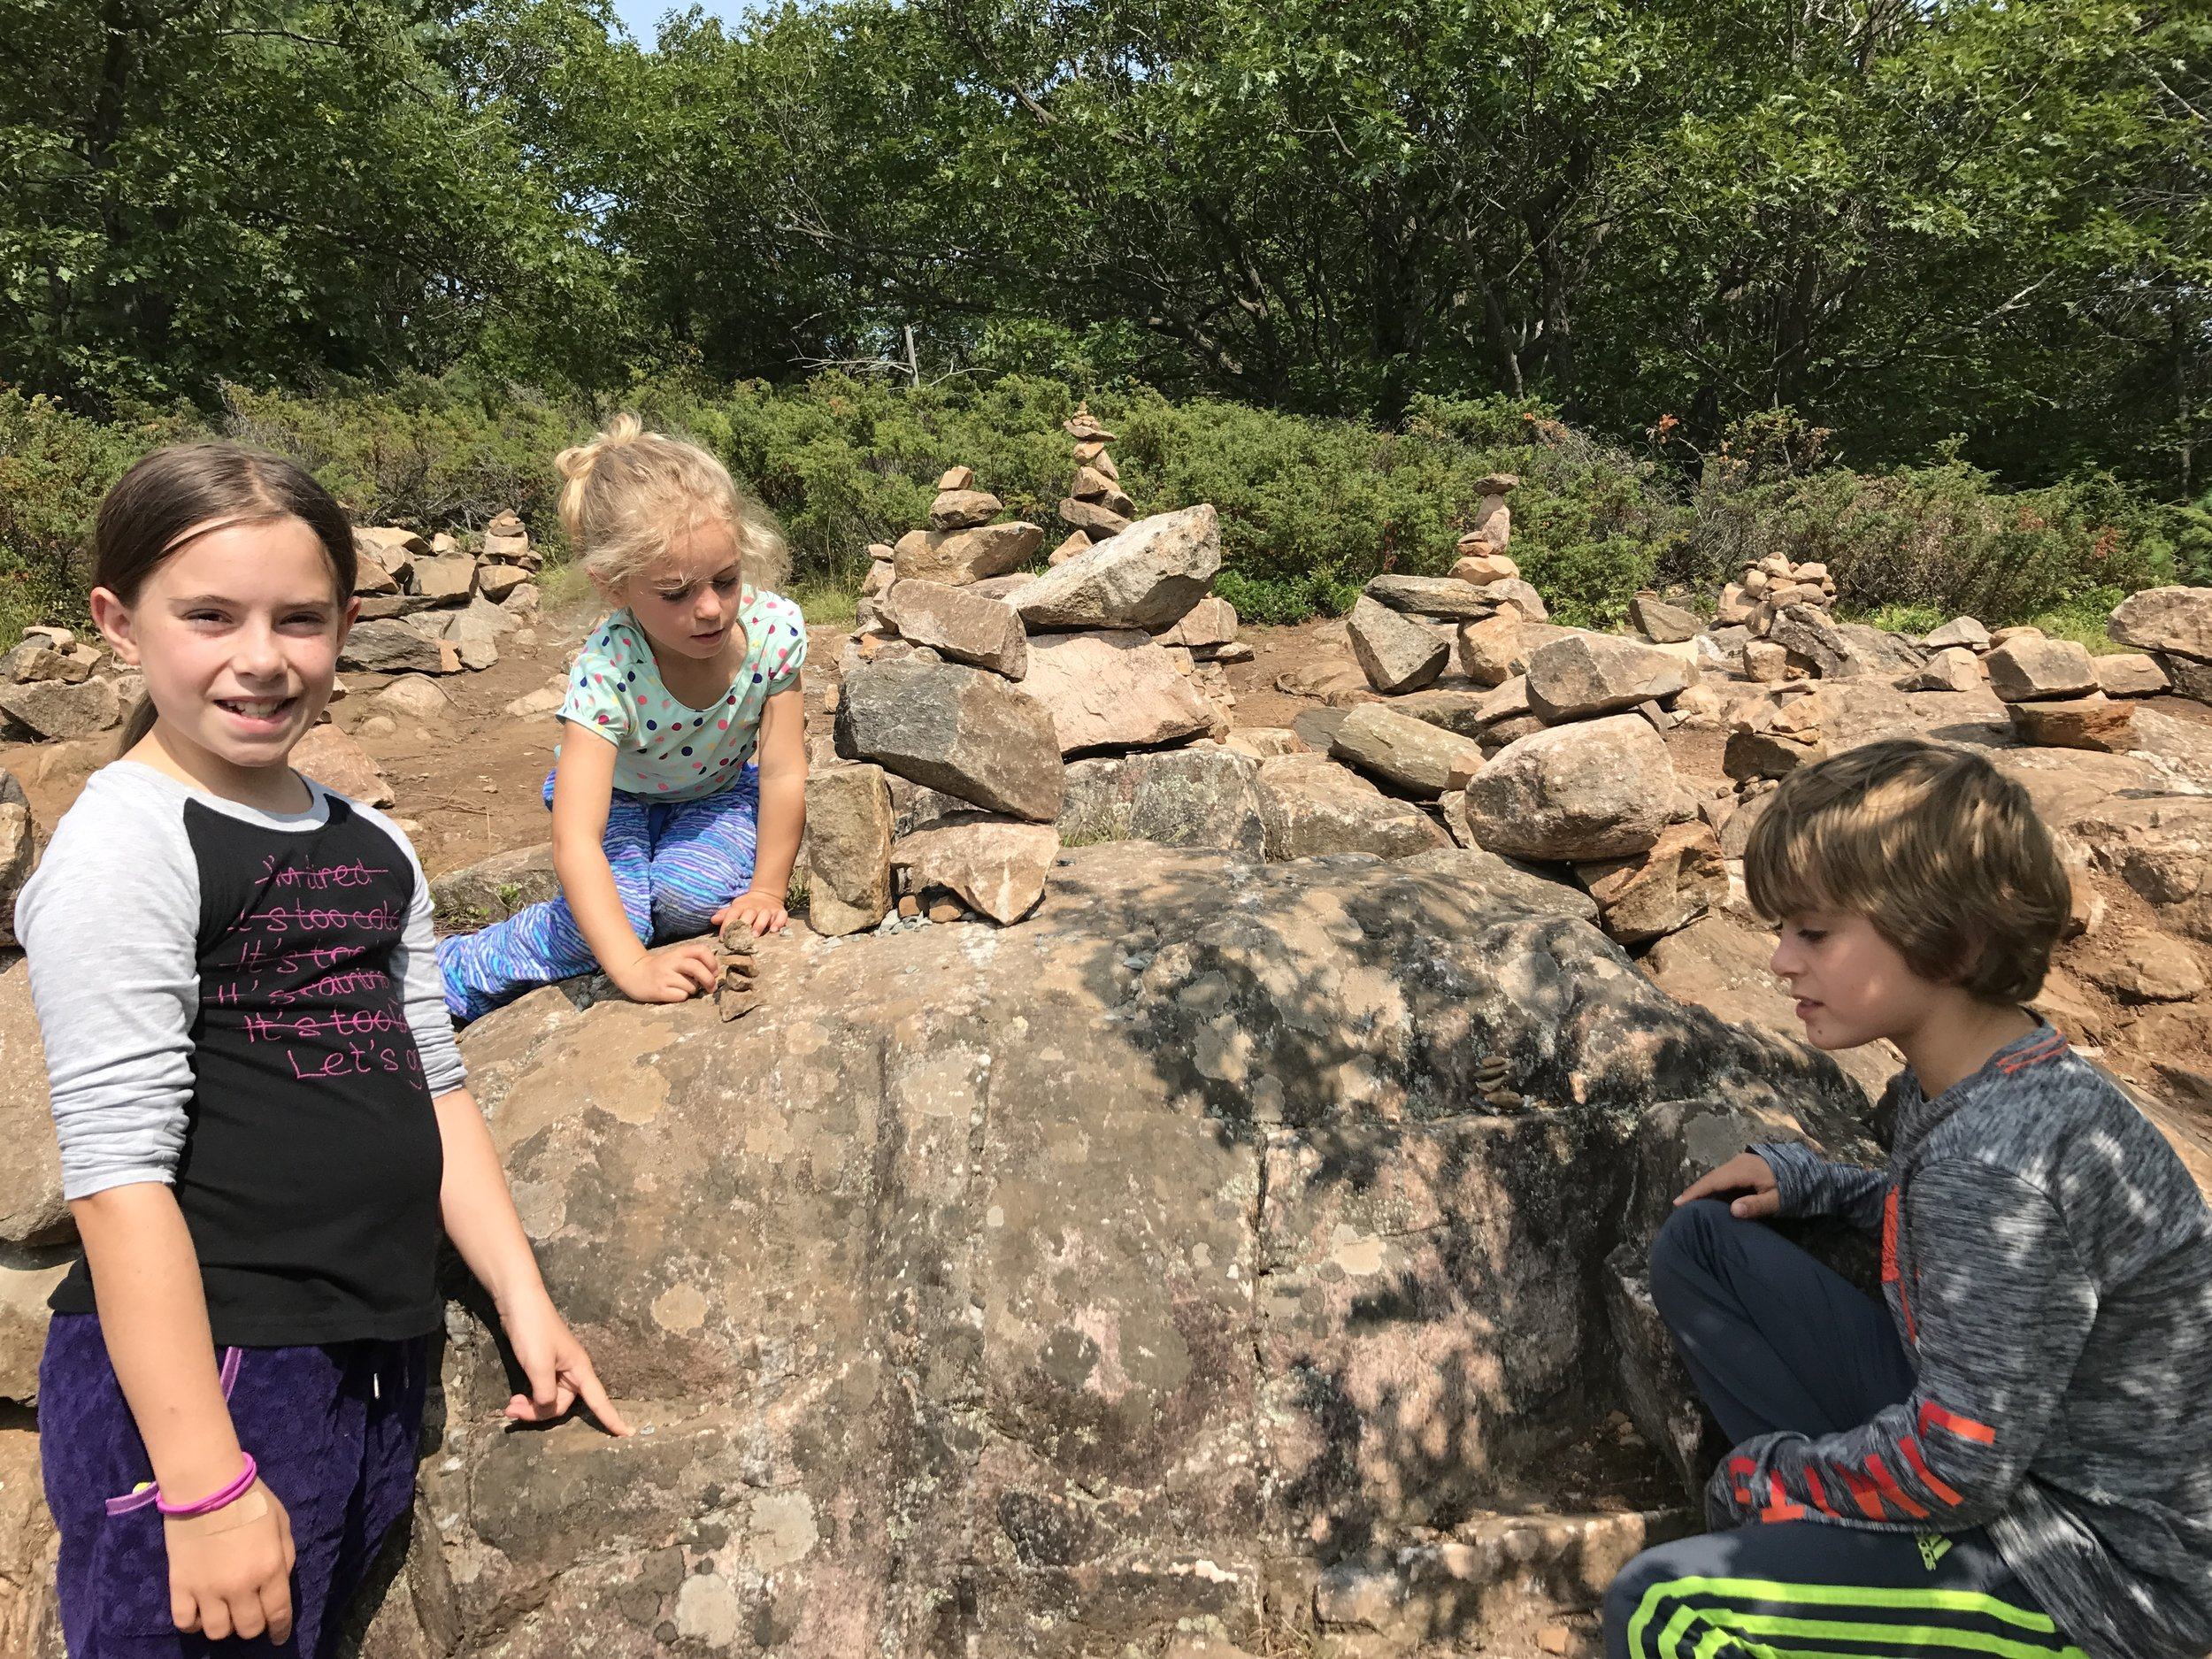 A family on Inusksuks on the Cliff Top Trail, Bon Echo Park.